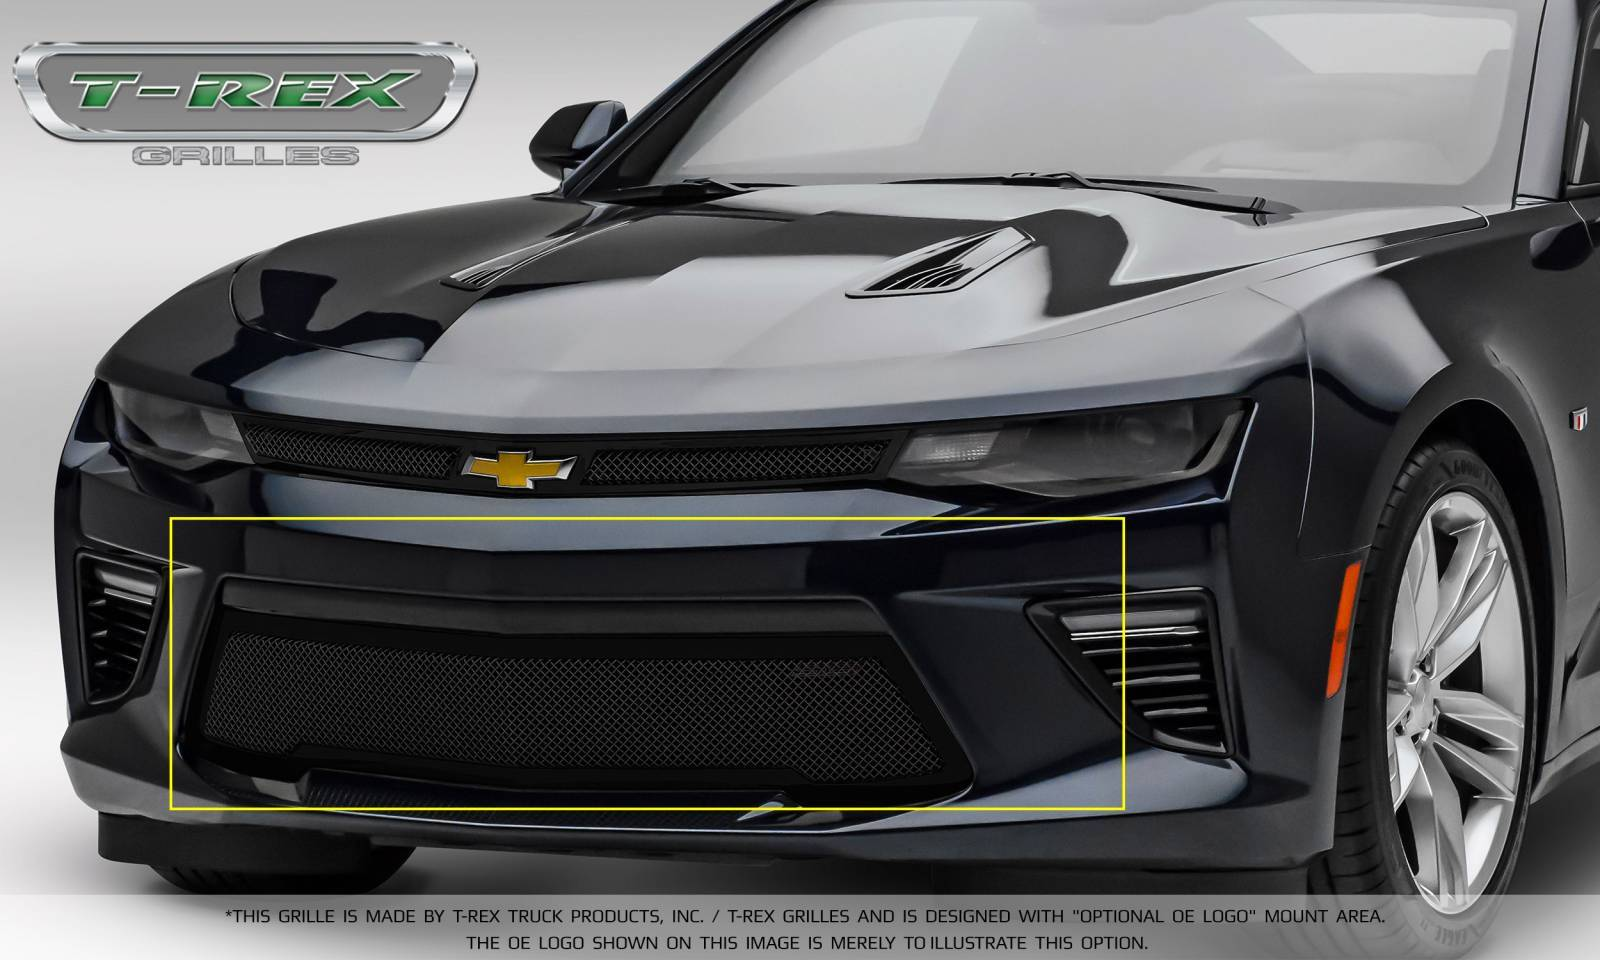 T-REX Grilles - T-REX Chevrolet Camaro V6 - Upper Class -Bumper Grille Overlay with Black Powder coat Finish - Pt # 52035